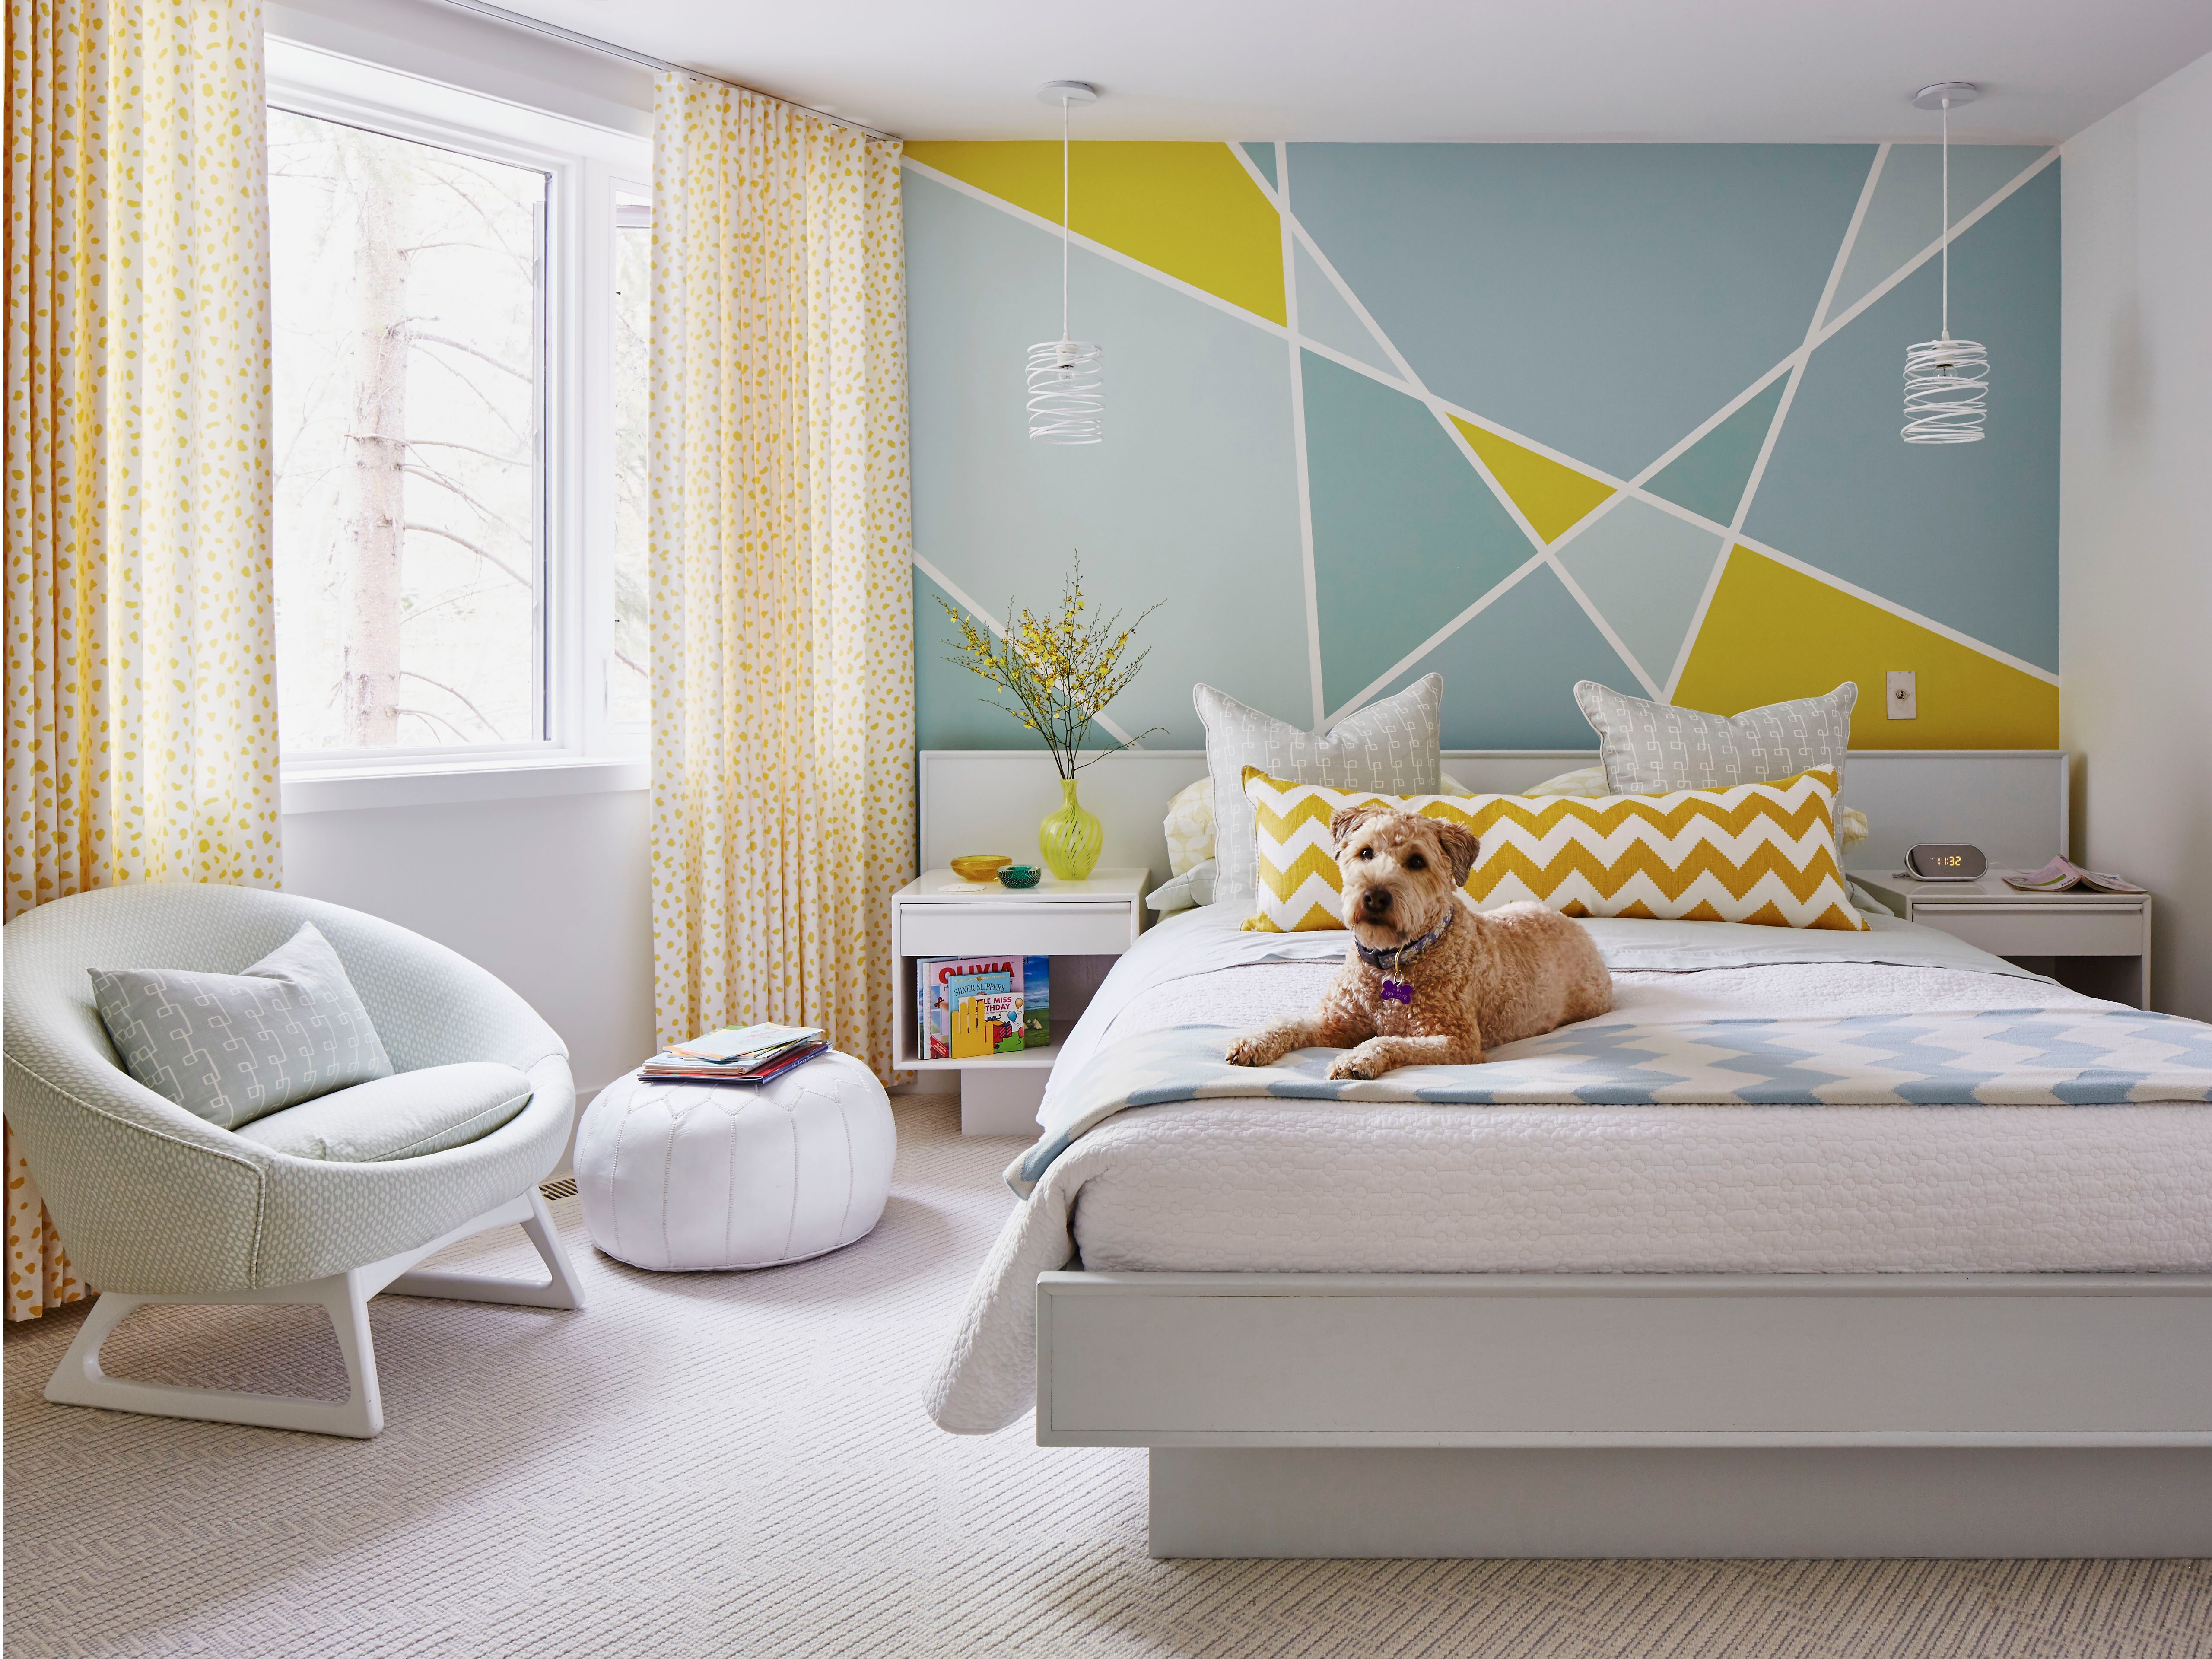 Thrifty decorating tip #1: Paint a focal wall